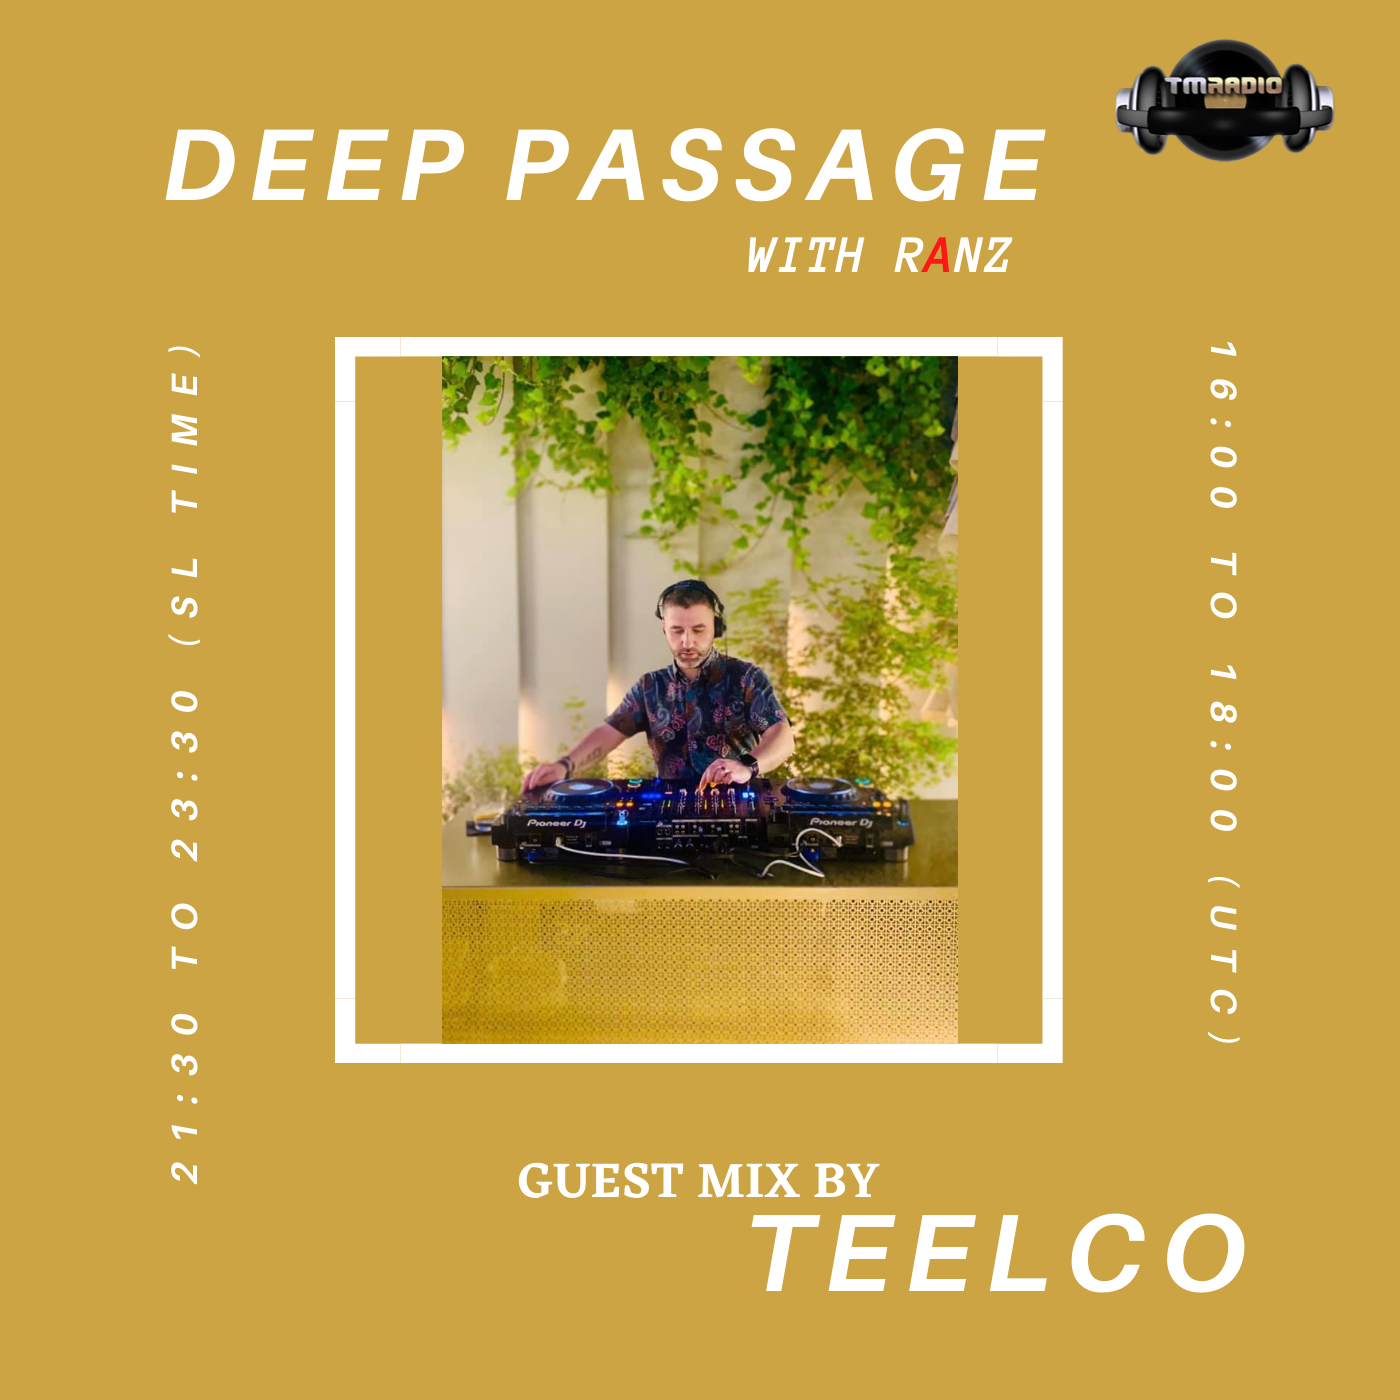 DEEP PASSAGE WITH RANZ   TM RADIO SHOW   EP 038   Guest Mix by TEELCO (Albania) (from August 16th)